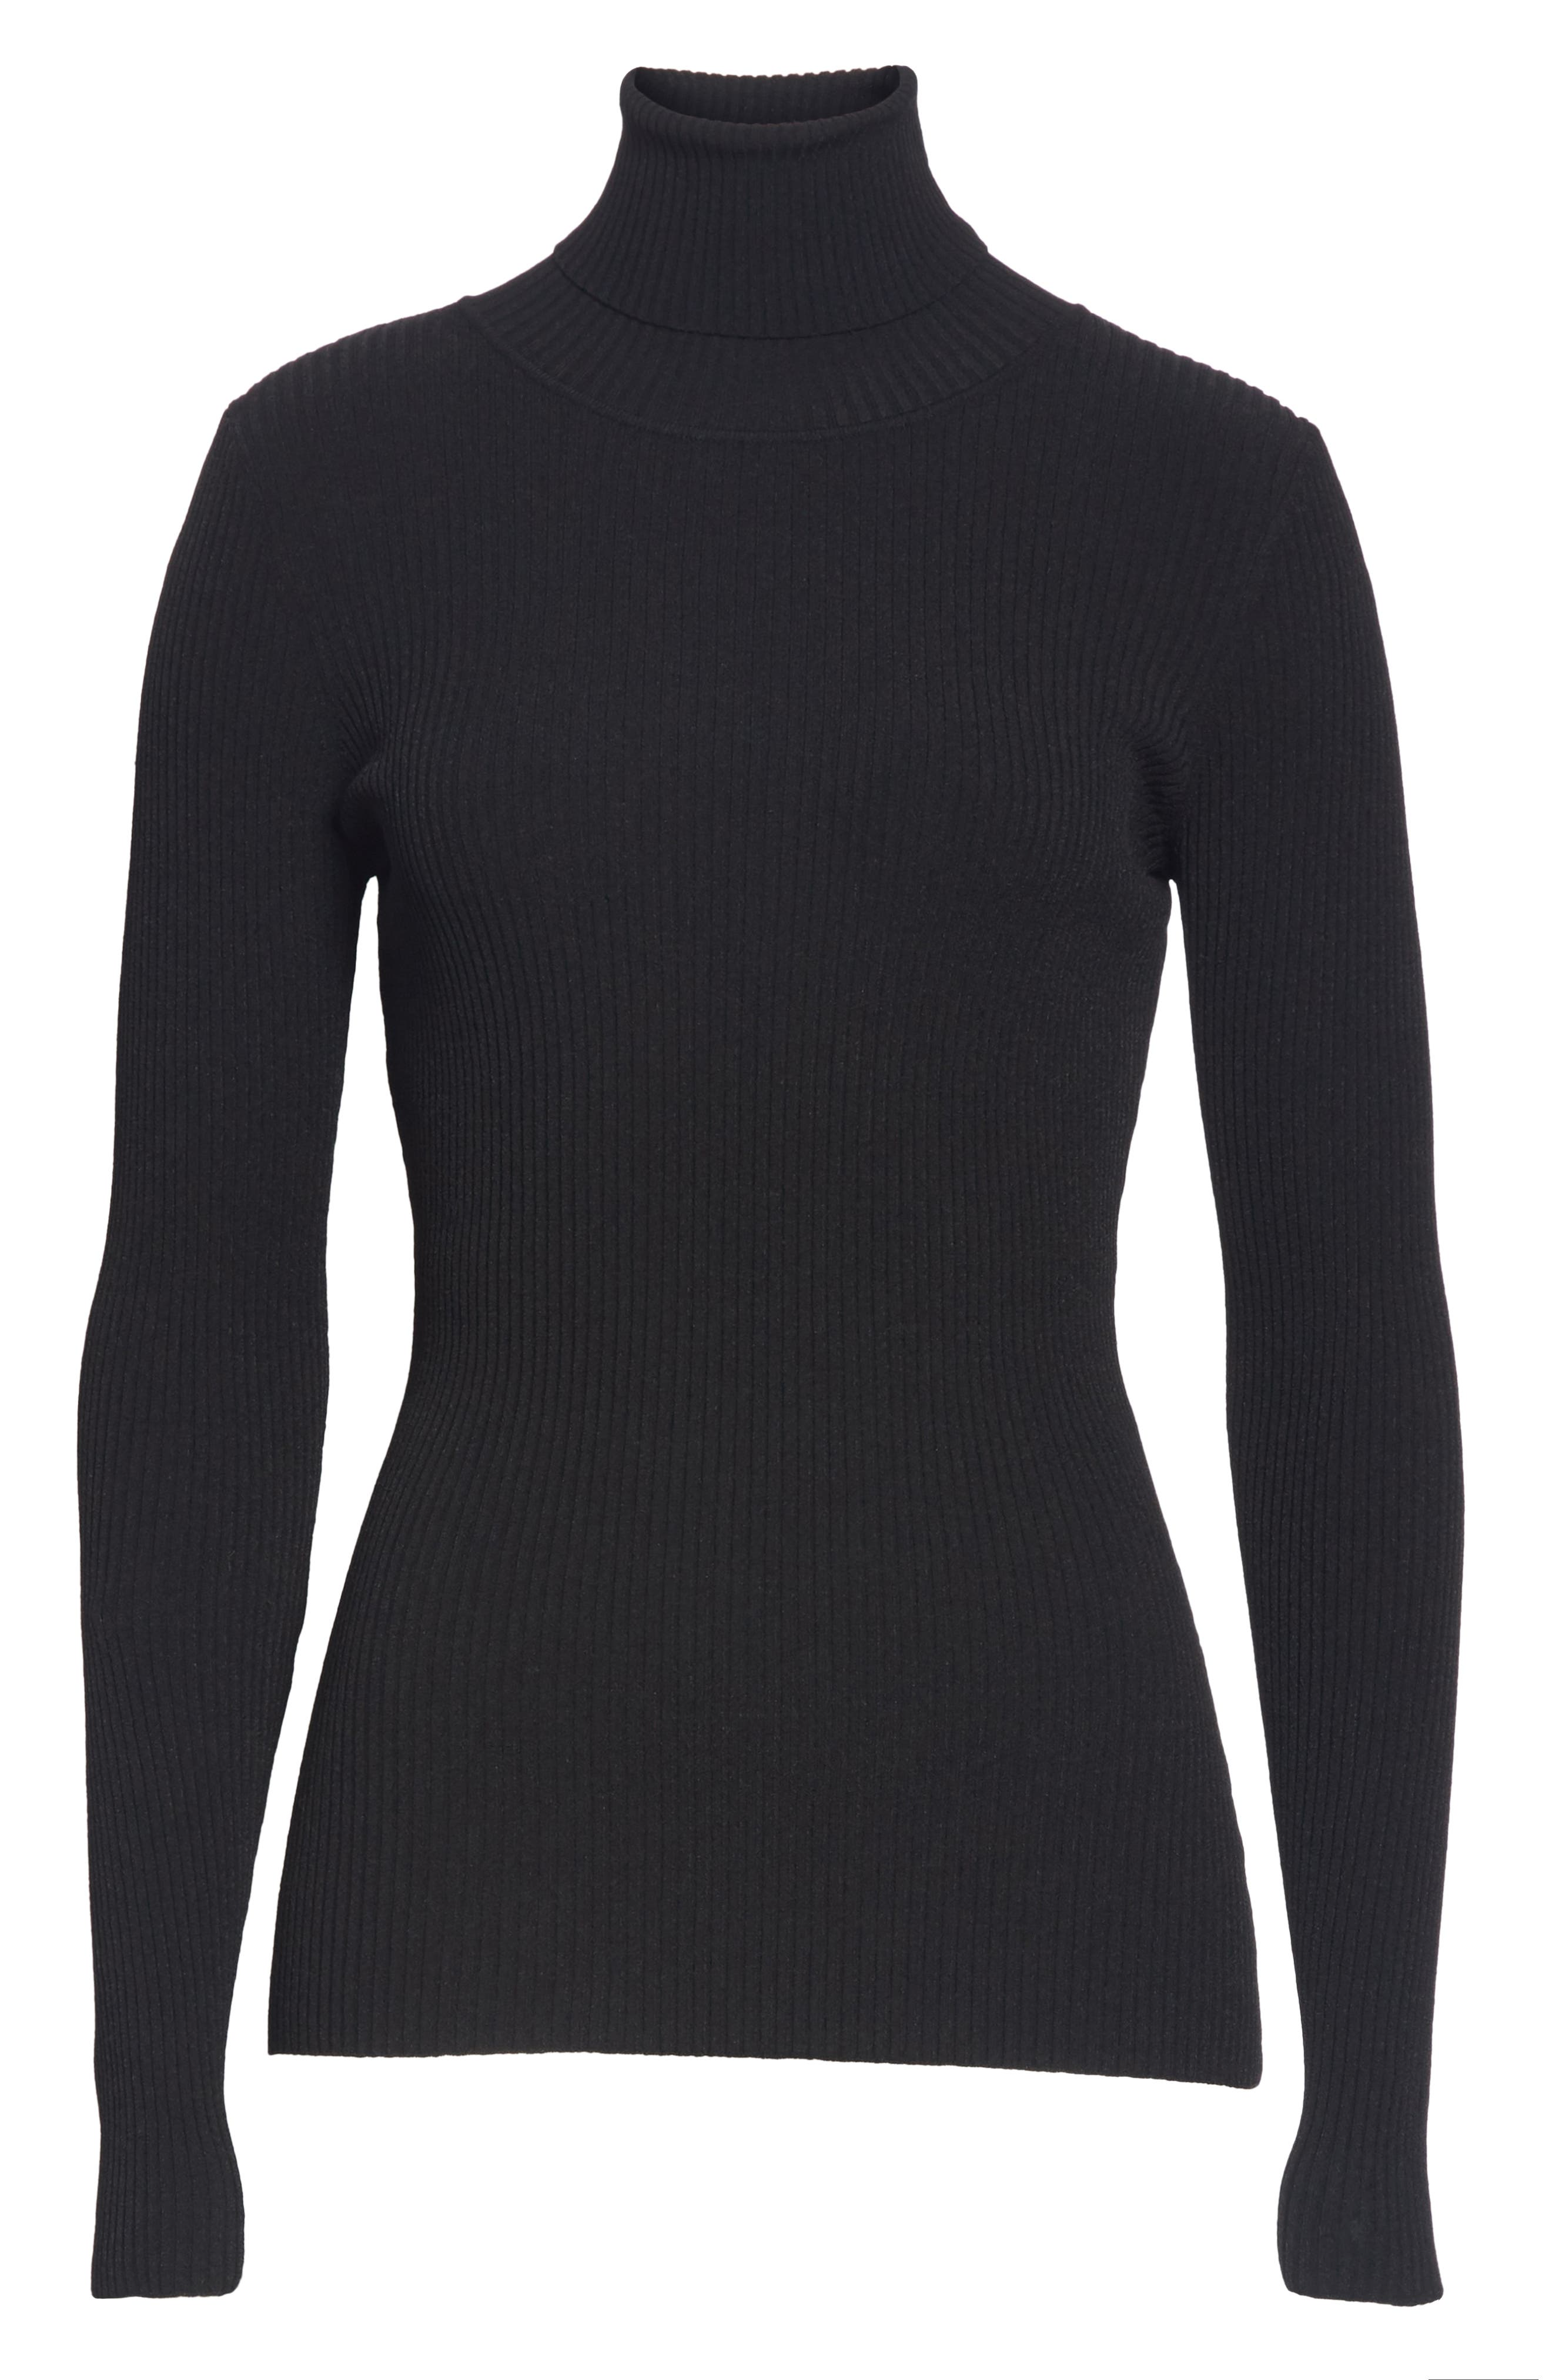 MILLY,                             Ribbed Turtleneck Sweater,                             Alternate thumbnail 6, color,                             001